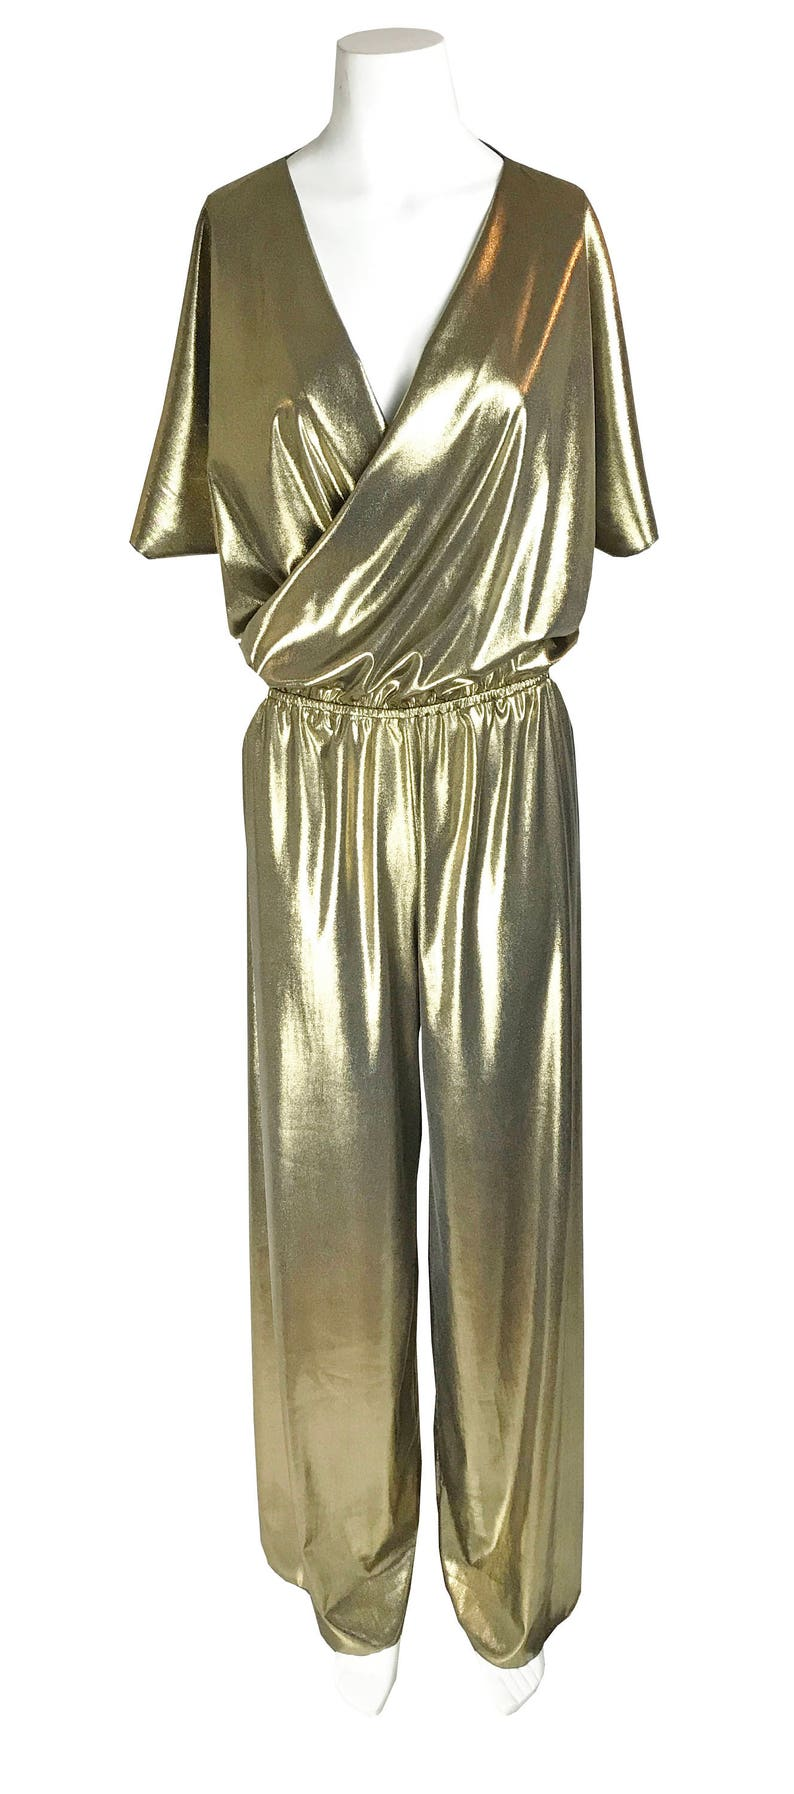 70s Disco Fashion: Disco Clothes, Outfits for Girls Baylis & Knight Gold Wrap Wide Leg CATSUIT 70s Chic Playsuit Jumpsuit Studio 54 $106.61 AT vintagedancer.com